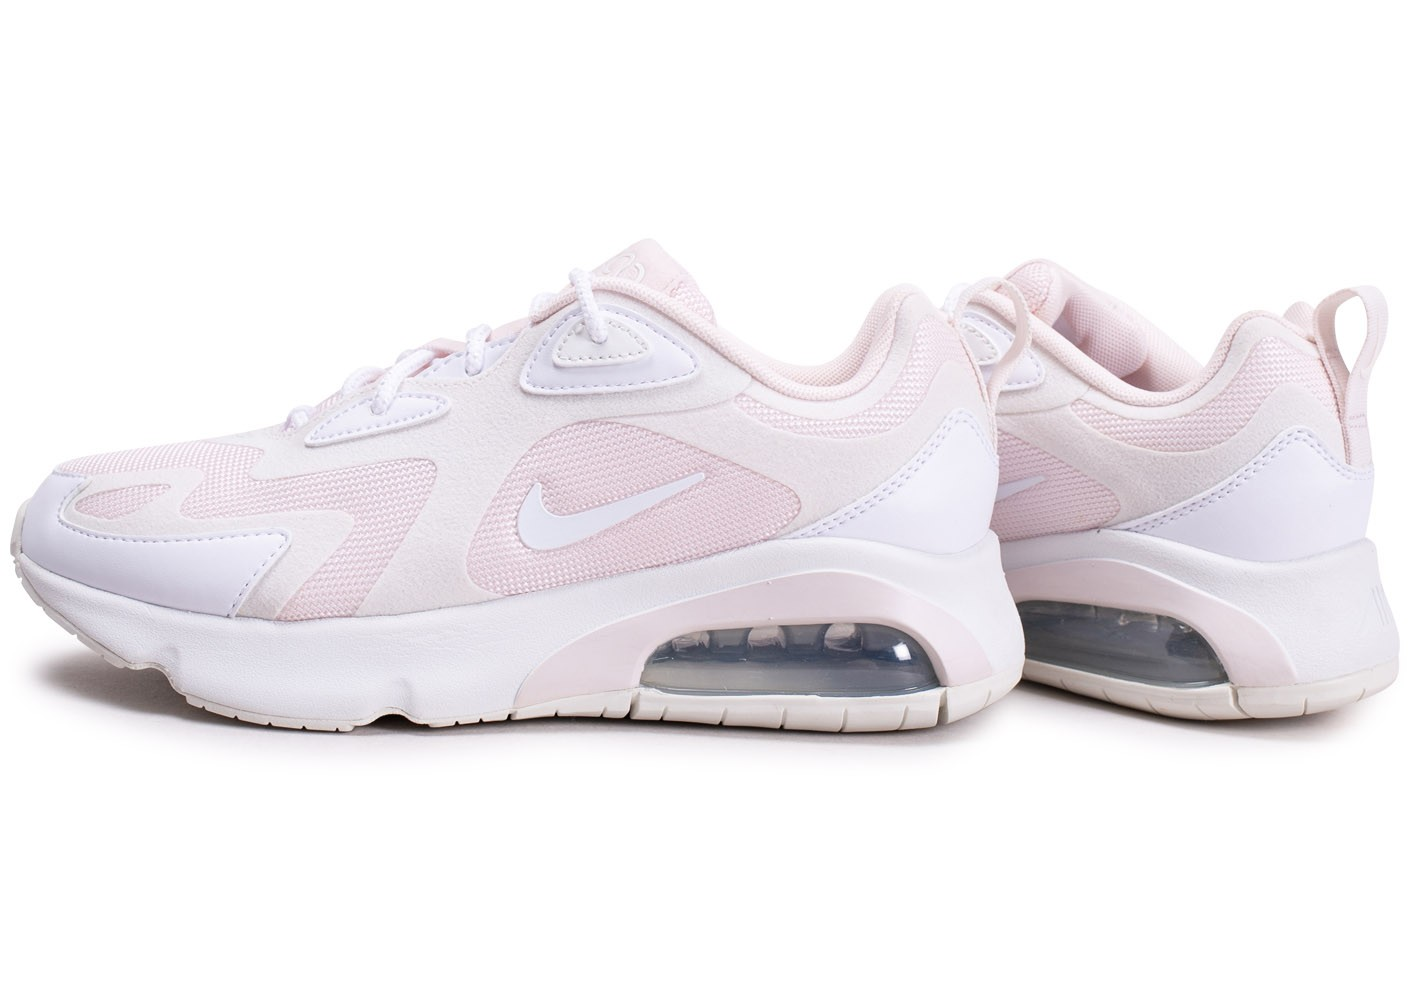 Nike Air Max 200 blanche et rose femme - Chaussures Baskets ...